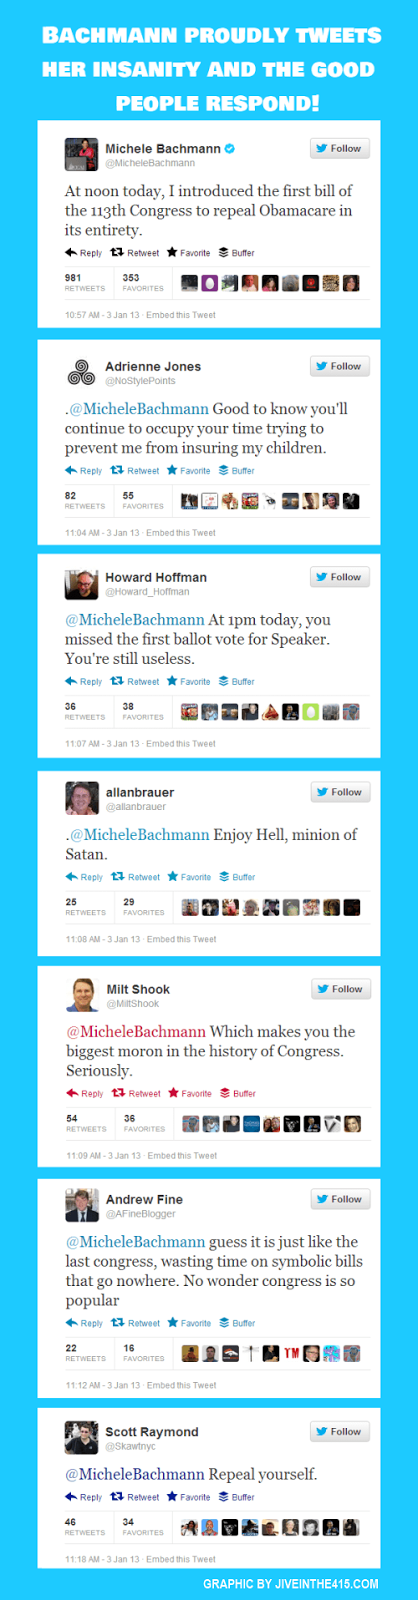 Full size graphic of Rep. Michele Bachmann's twitter insanity and the fabulous replies.